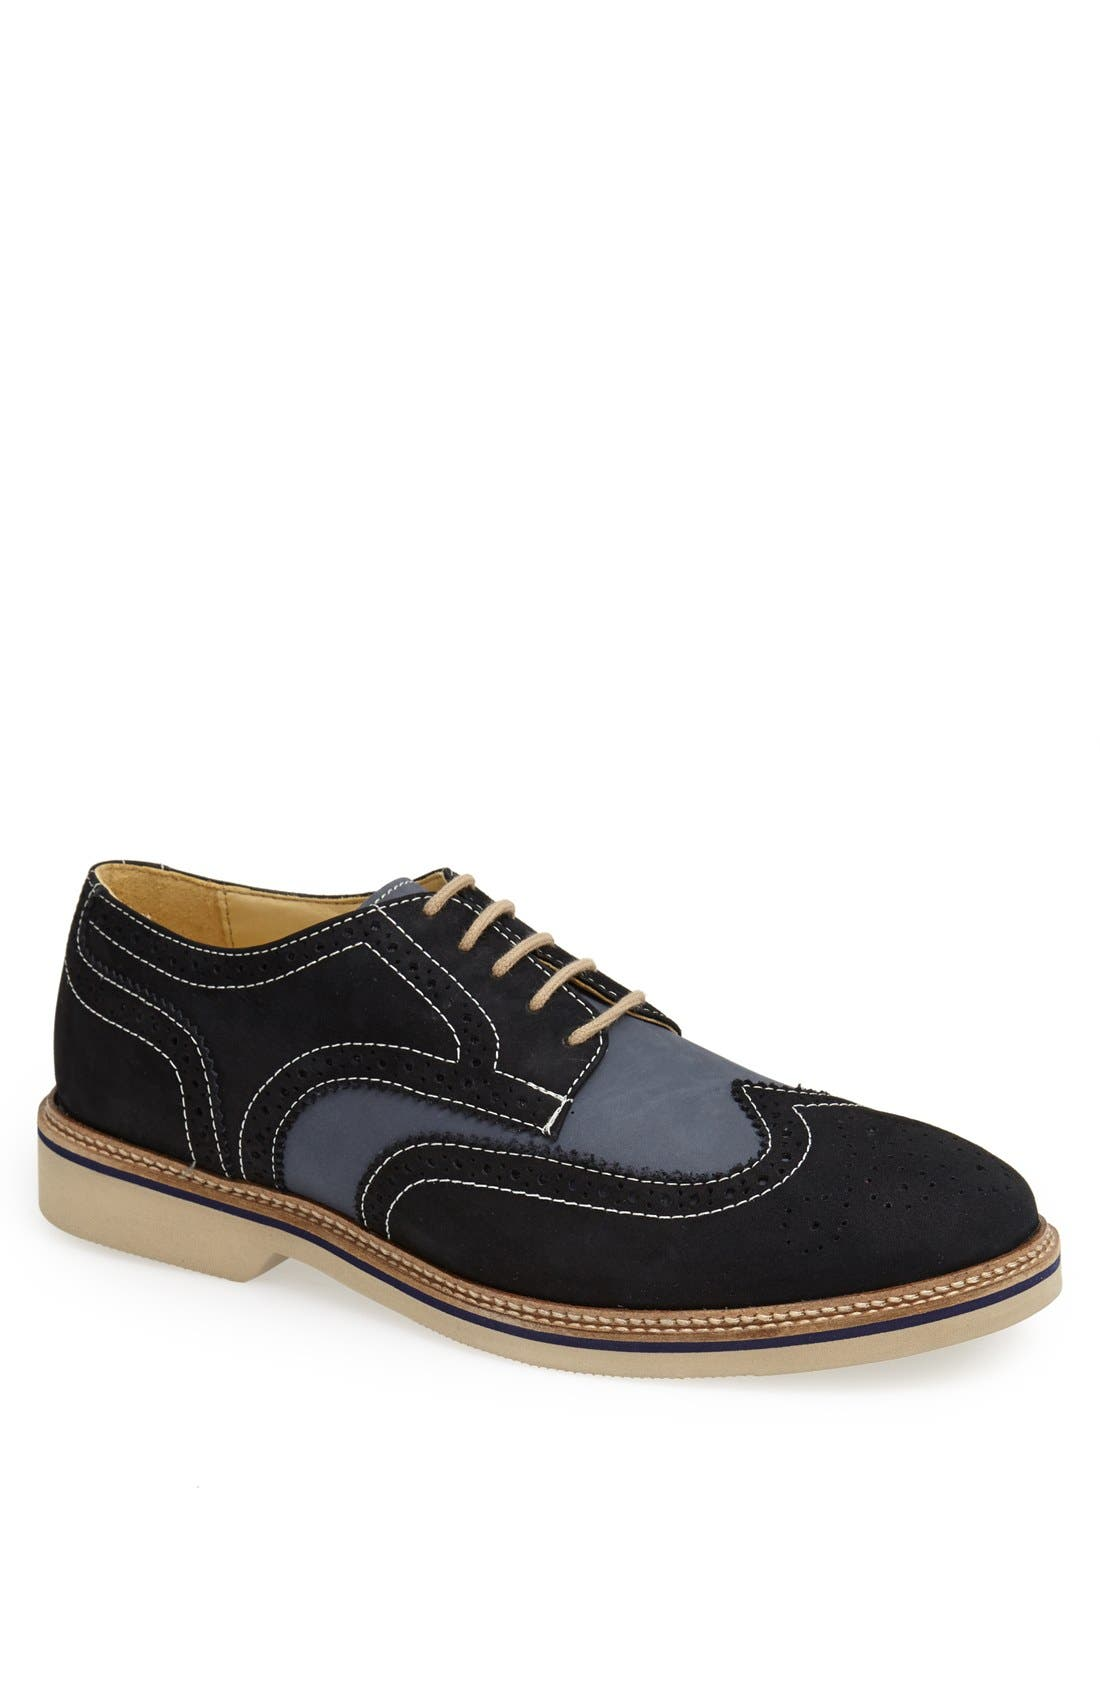 Alternate Image 1 Selected - 1901 'Wing It' Suede Oxford (Men)